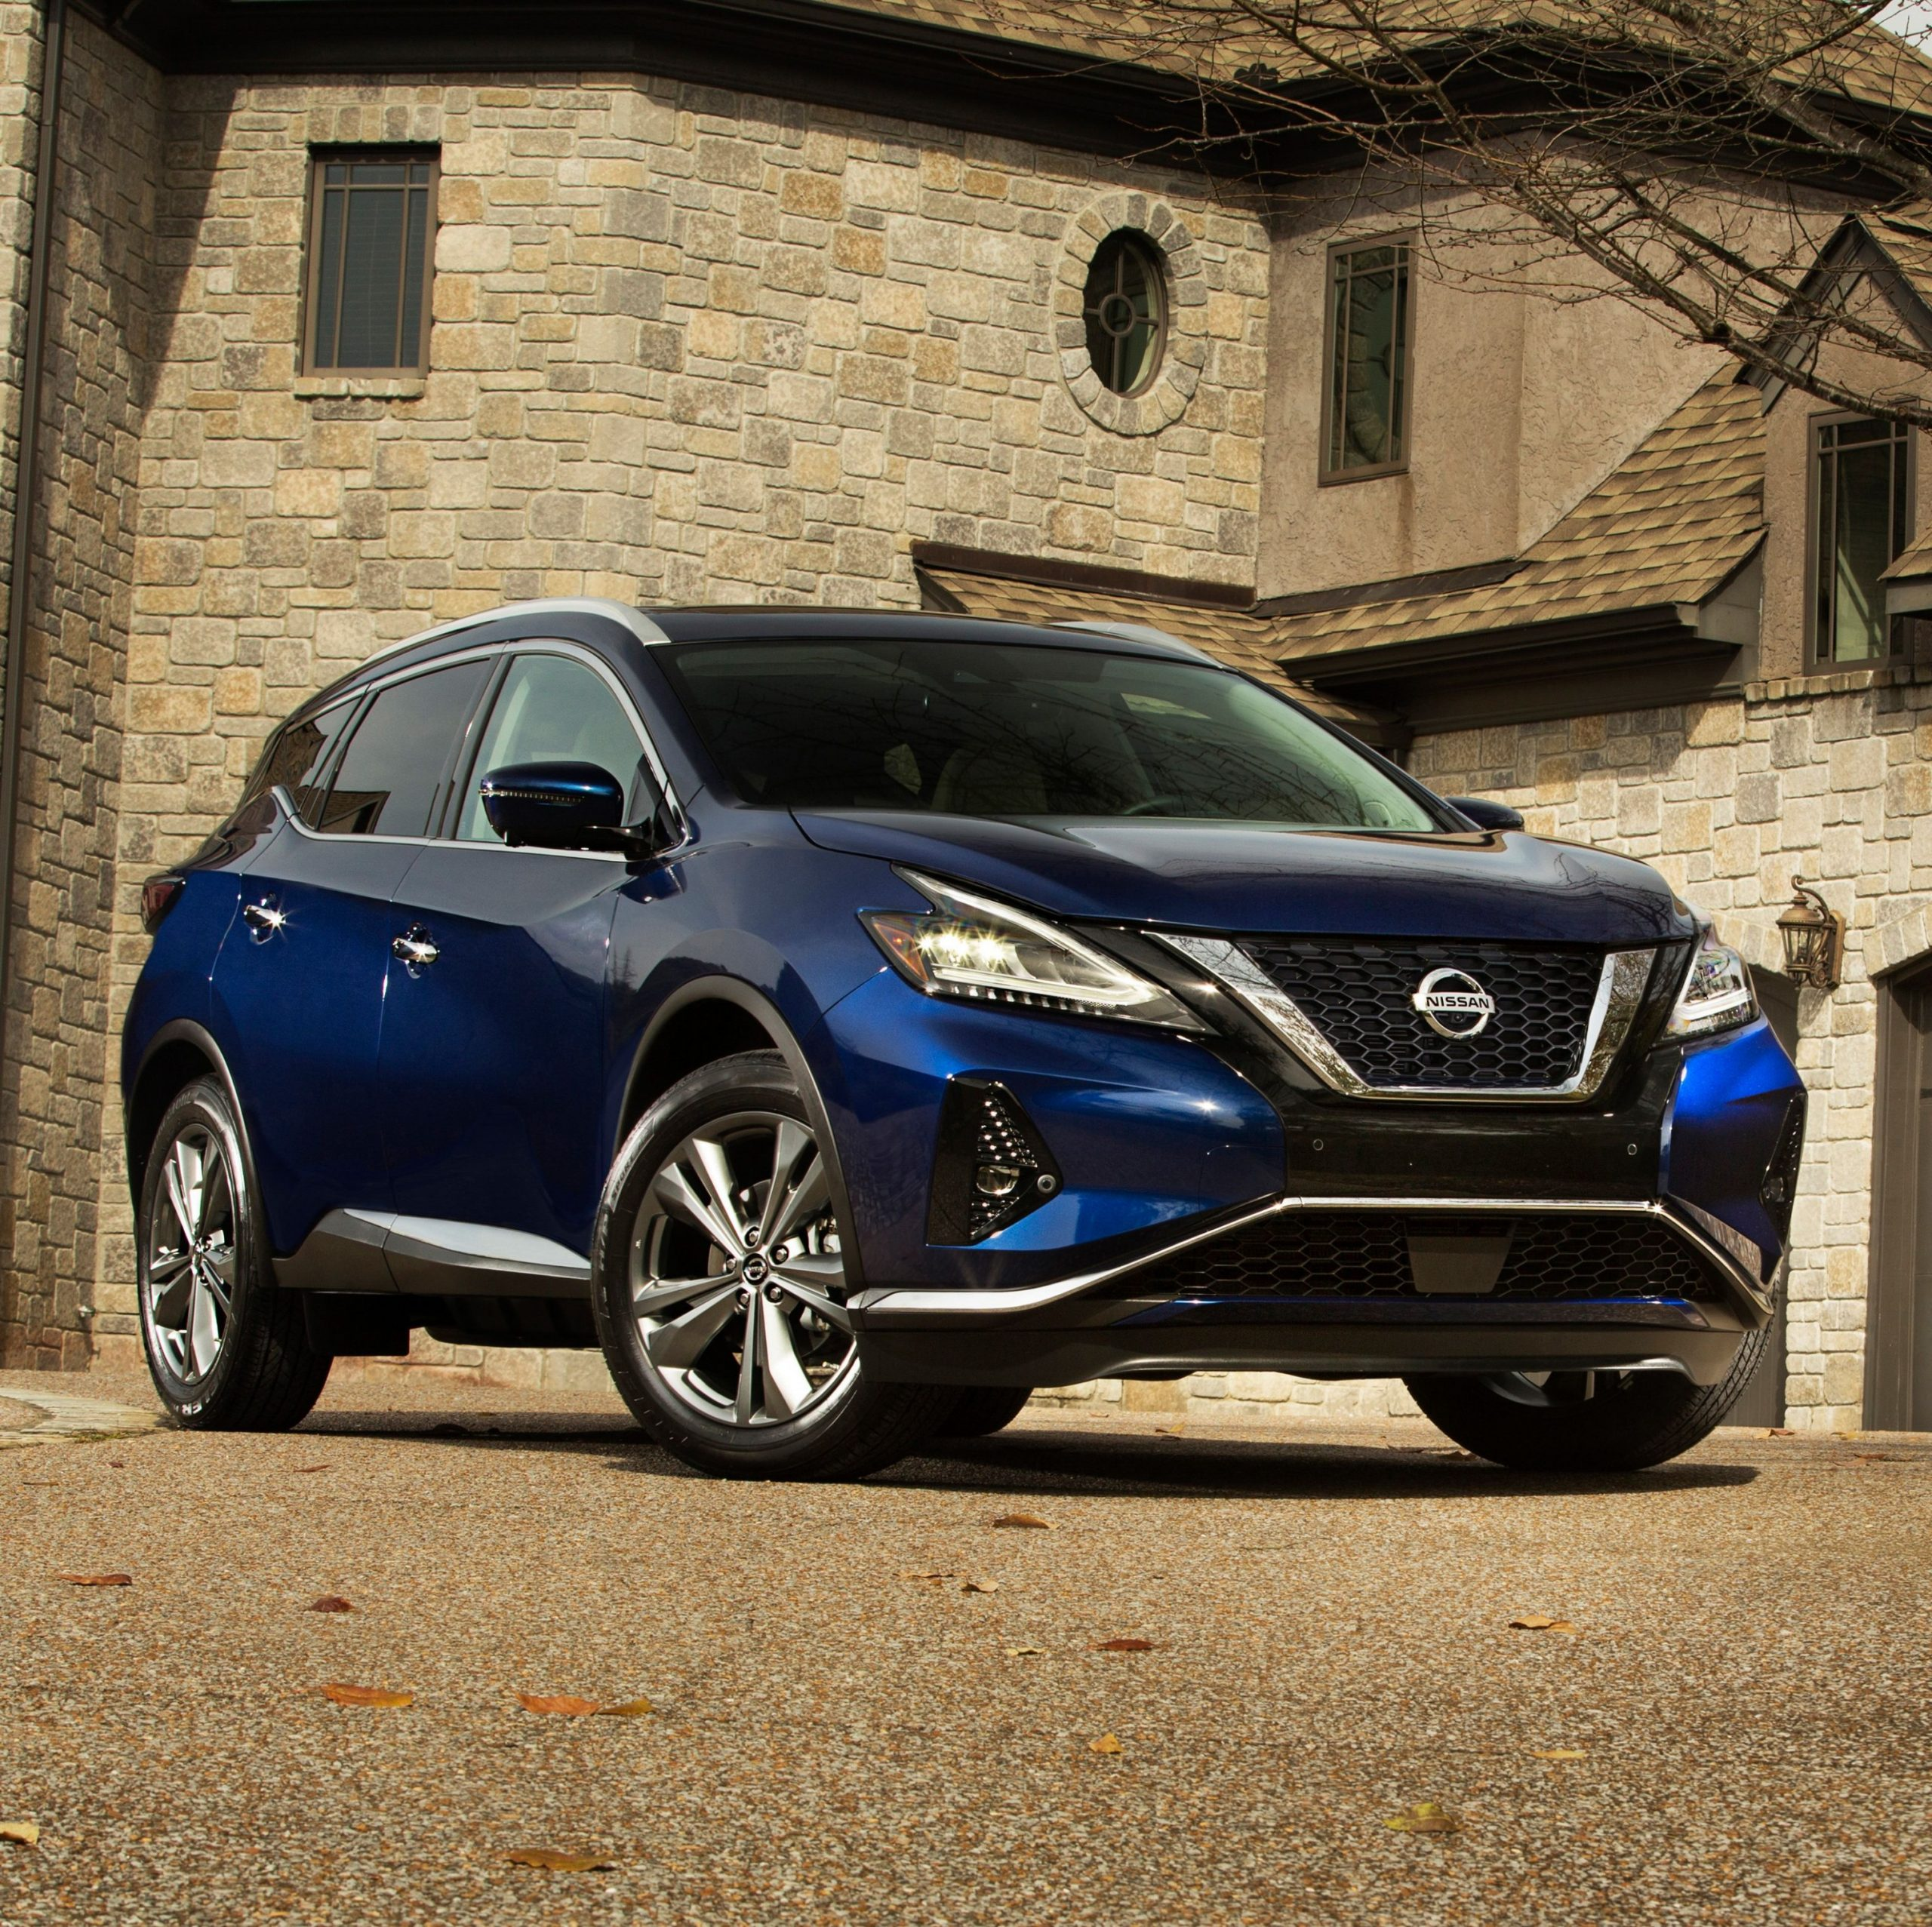 5 Nissan Murano Adds New Colors, Starts at $5,5 - Nissan Murano 2021